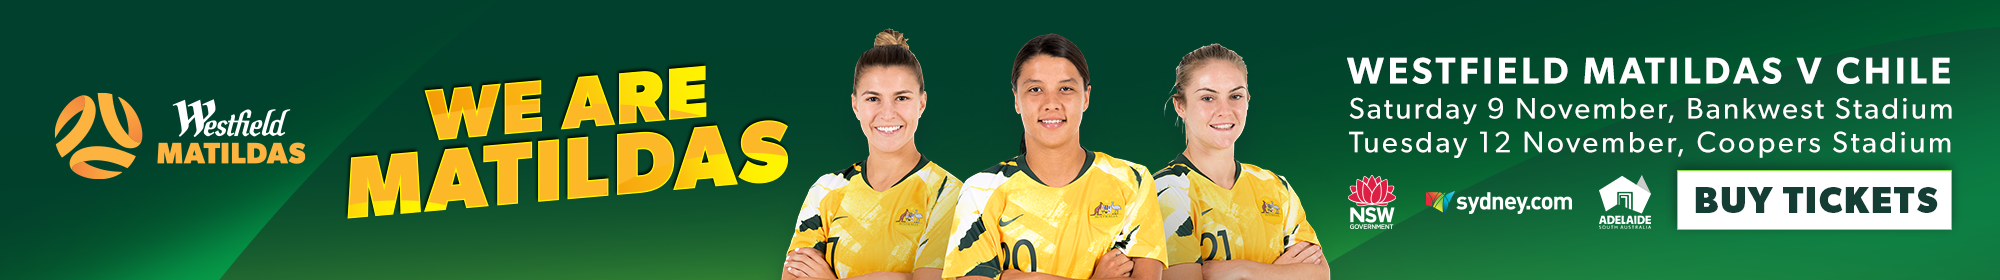 Matildas-Chile-match